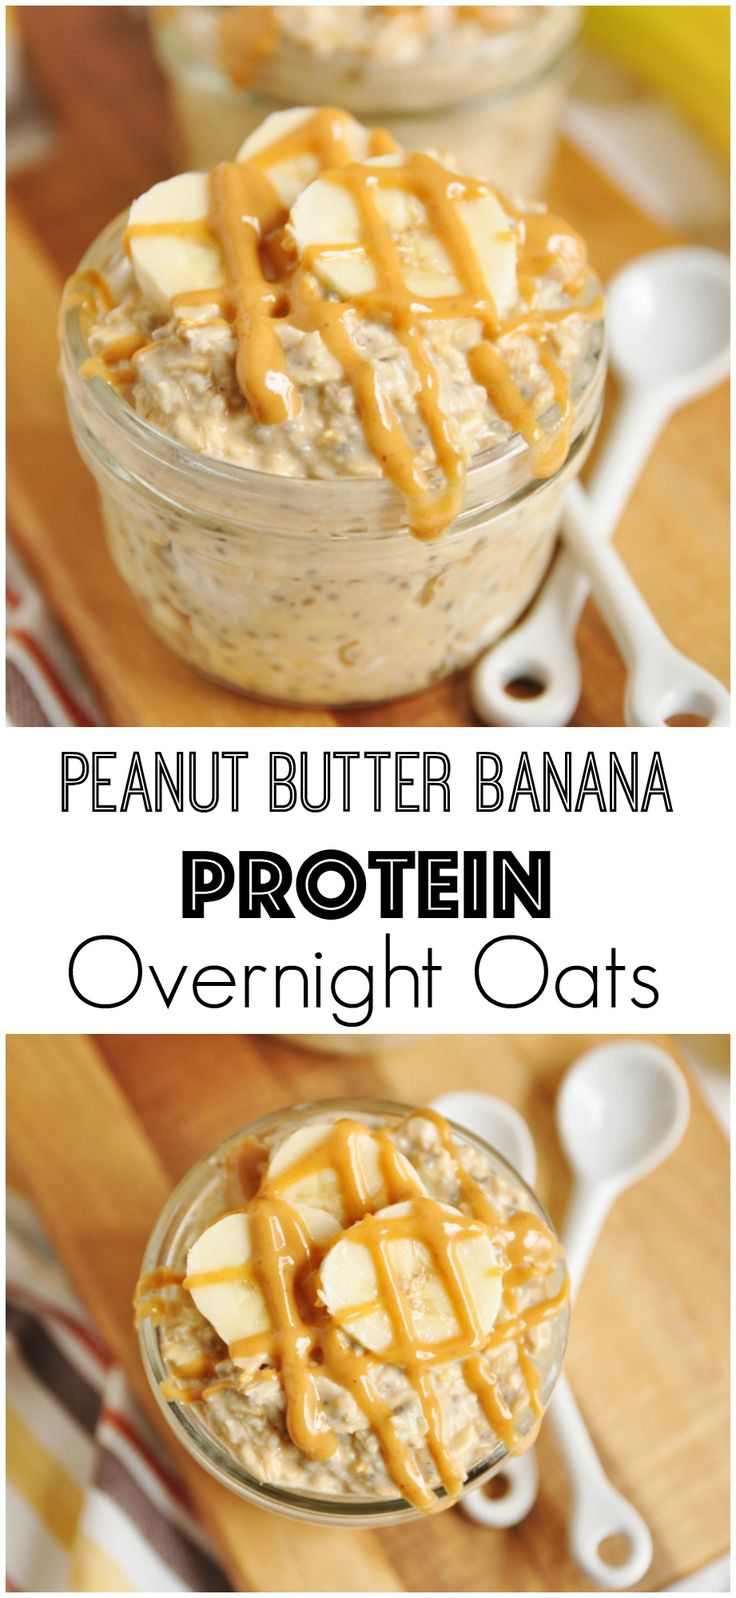 Peanut Butter Banana Protein Overnight Oats. Be Whole. Be You.